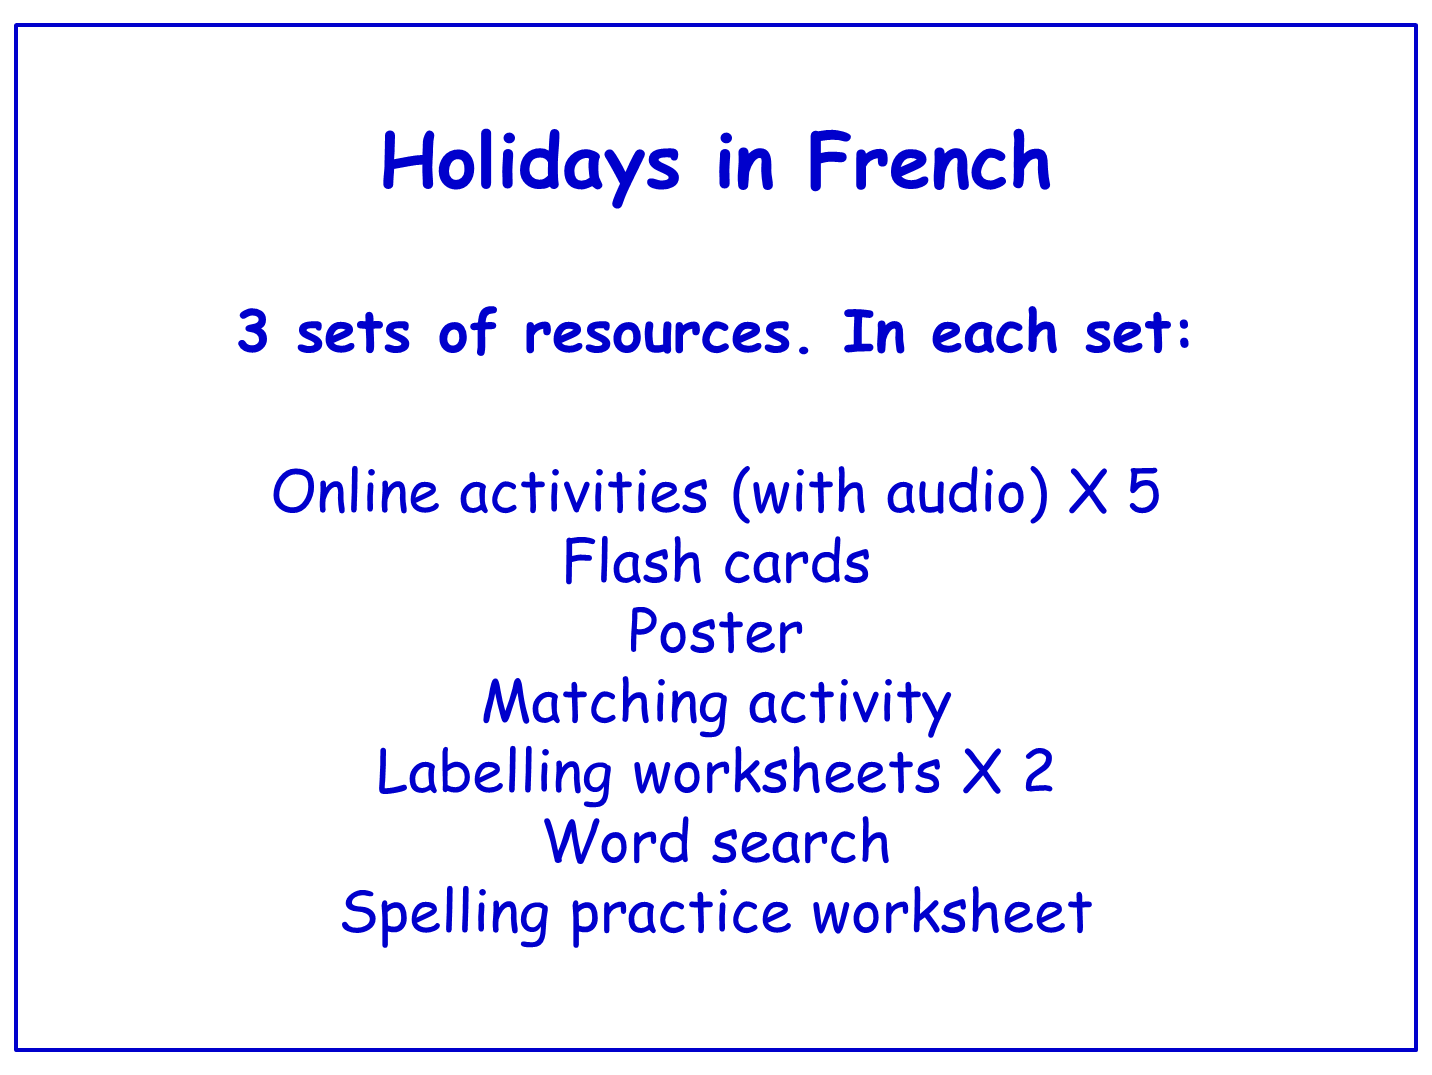 Holidays in French  Worksheets, Games, Activities and Flash Cards (with audio) Bundle (3 sets)